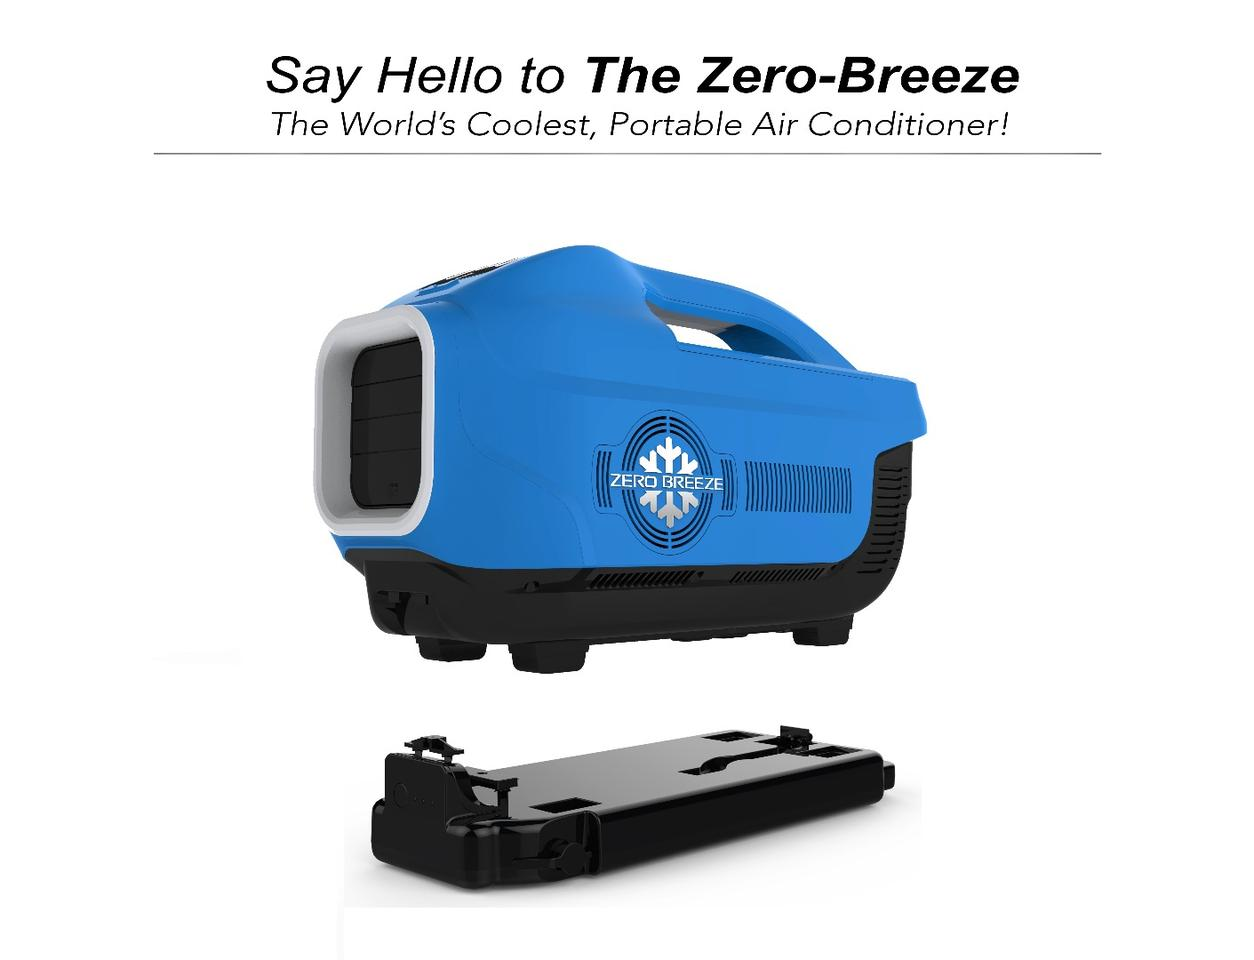 With its available battery, the Zero Breeze becomes a portable, cool-anywhere AC